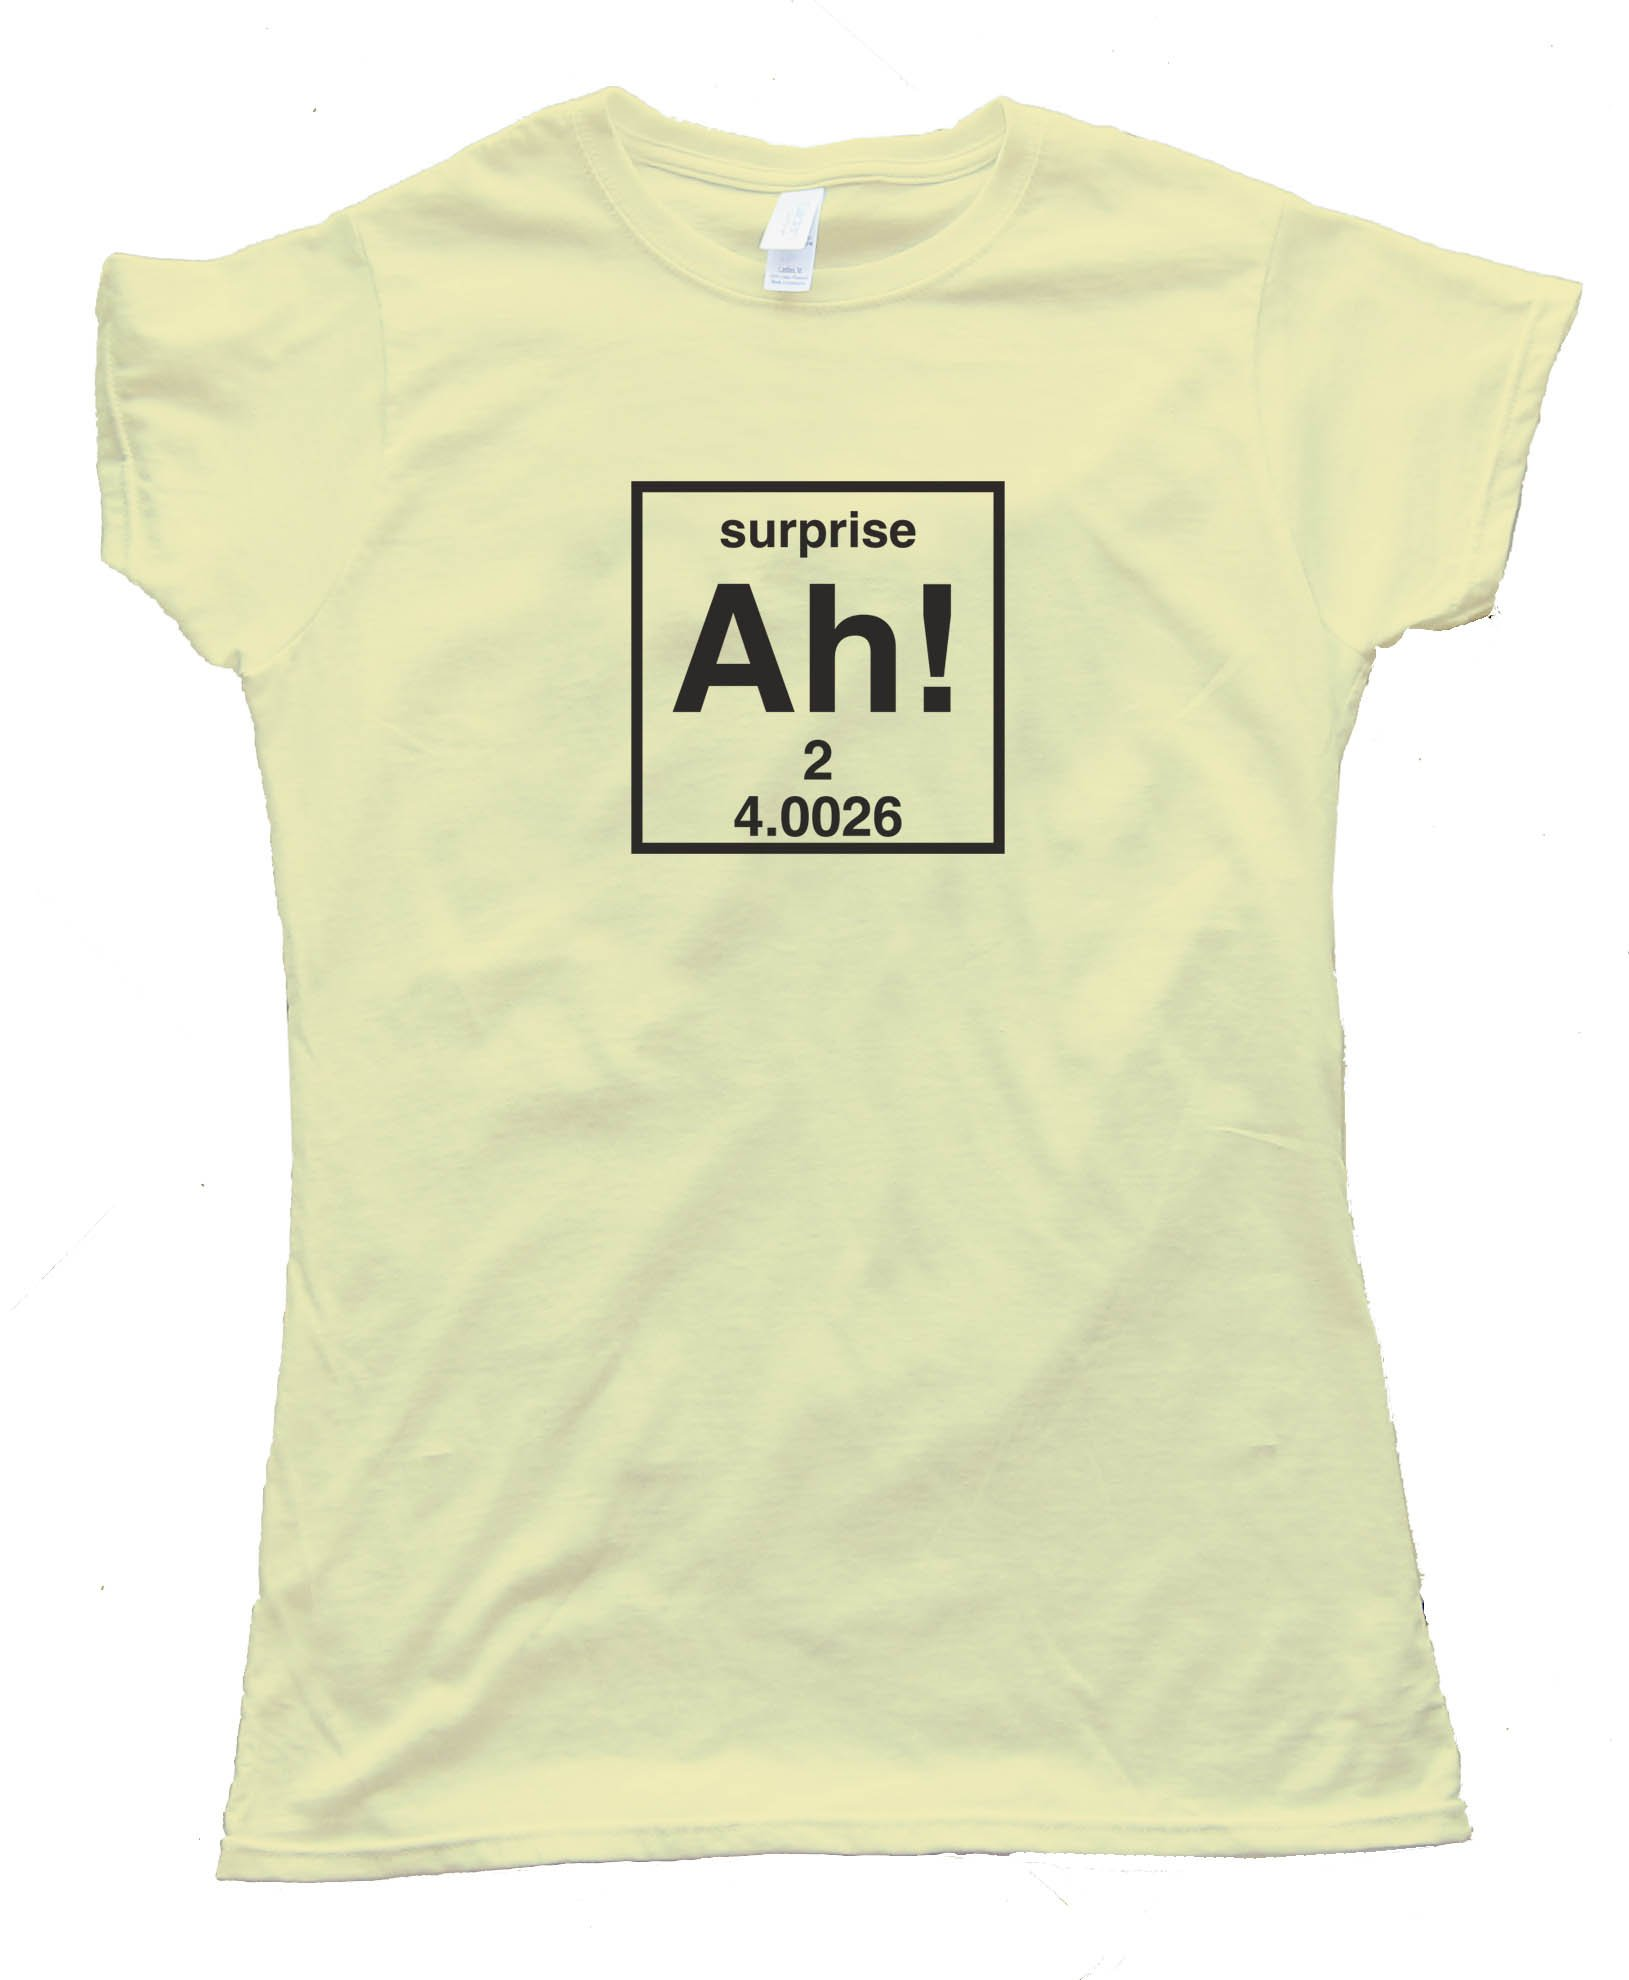 Womens Ah! The Element Of Surprise -Tee Shirt